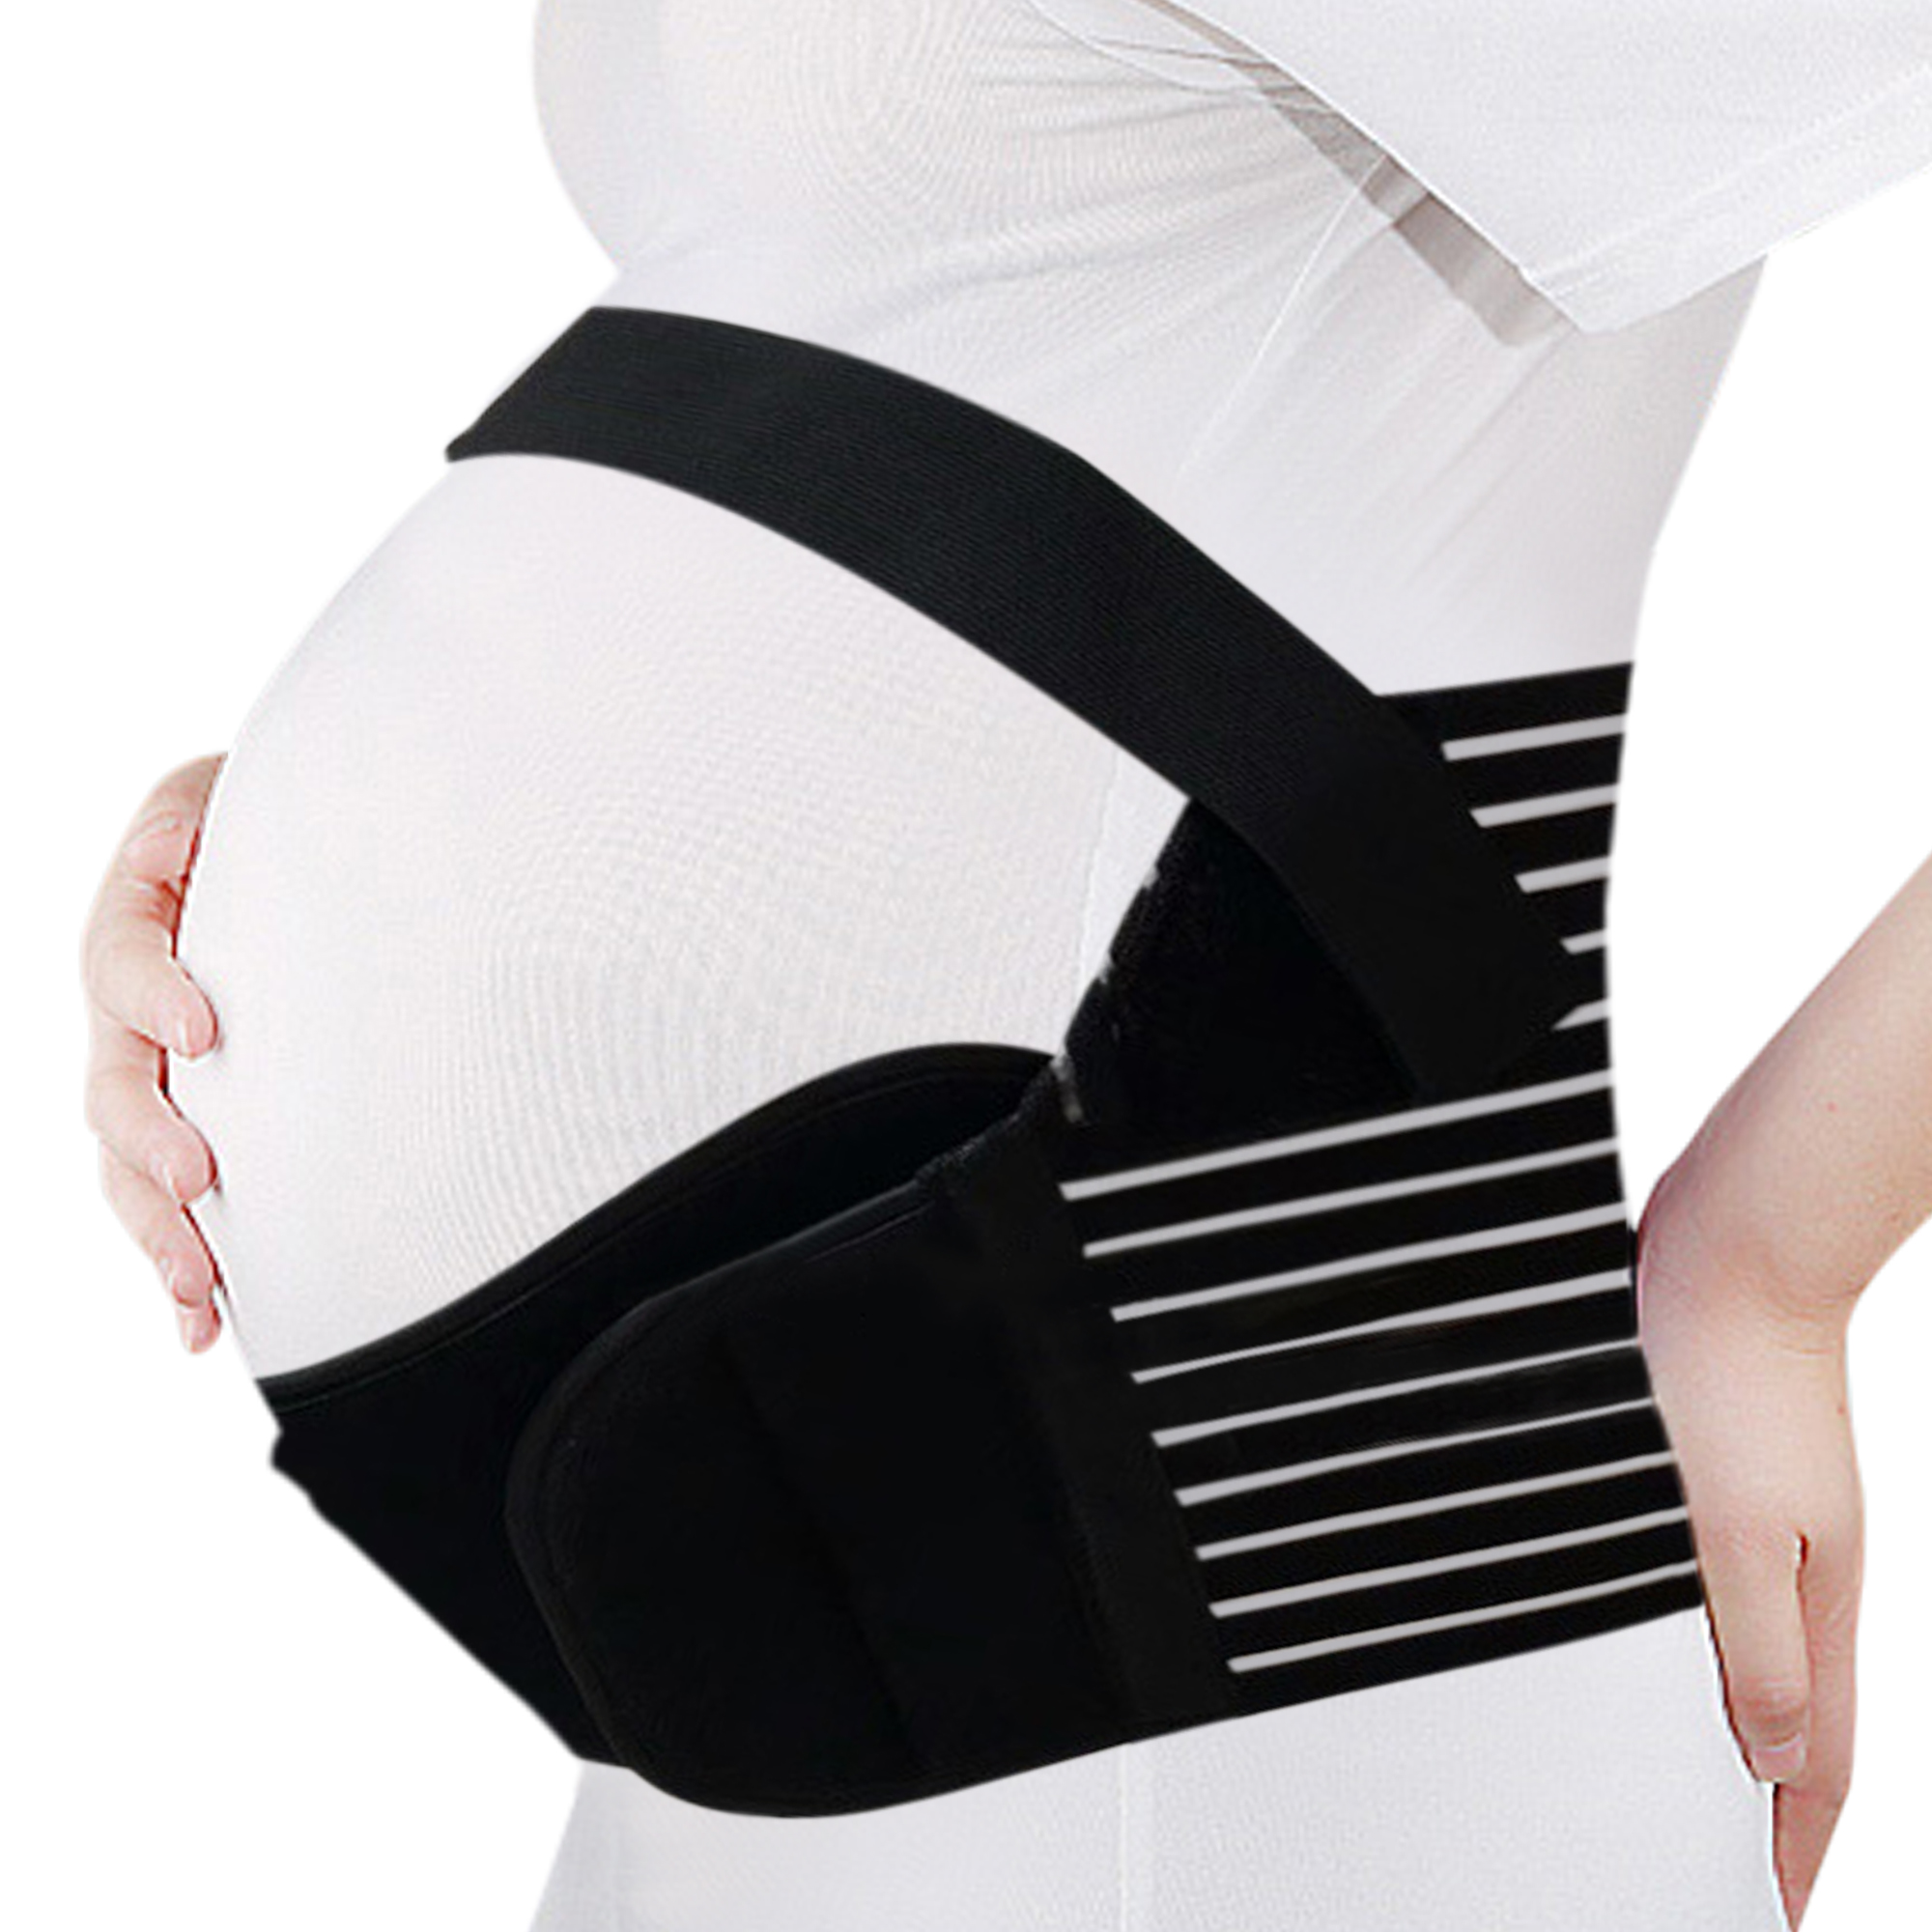 Maternity Antepartum Belt Pregnancy Support Waist Belly Band Back Brace